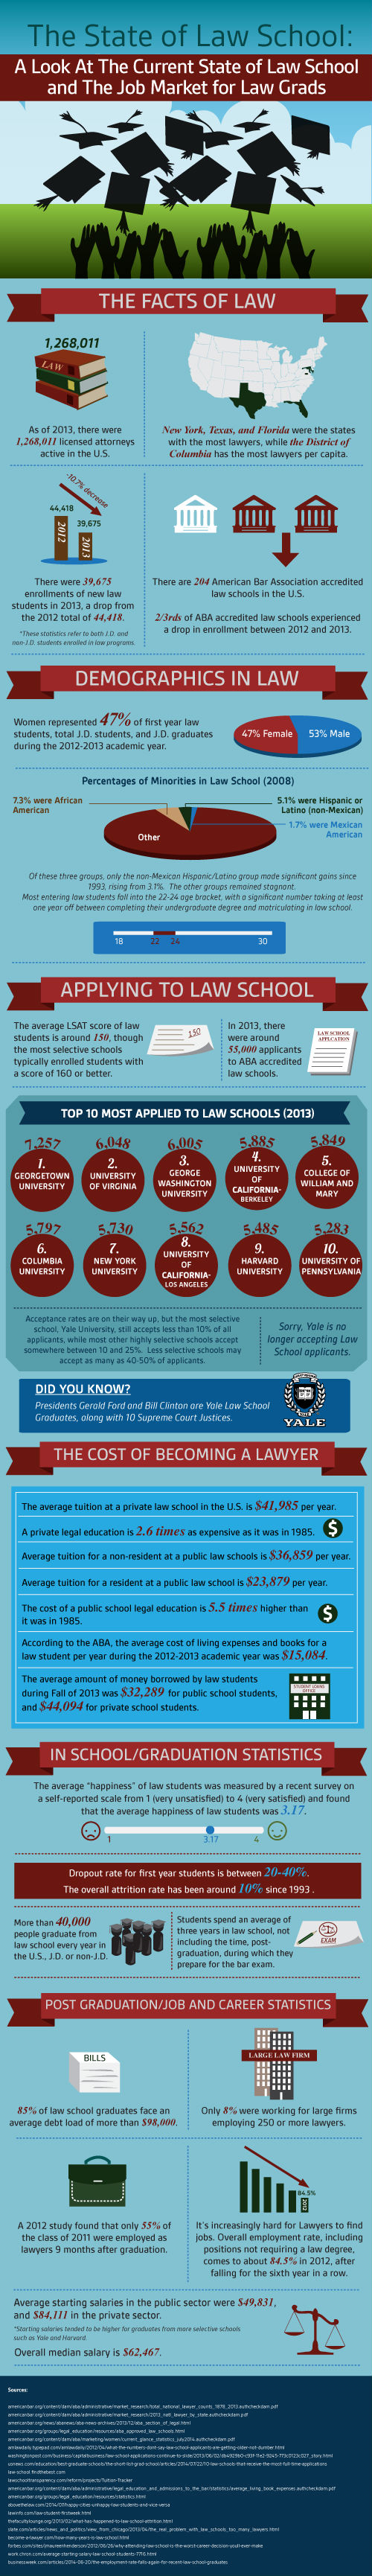 The State of Law School [Infographic]